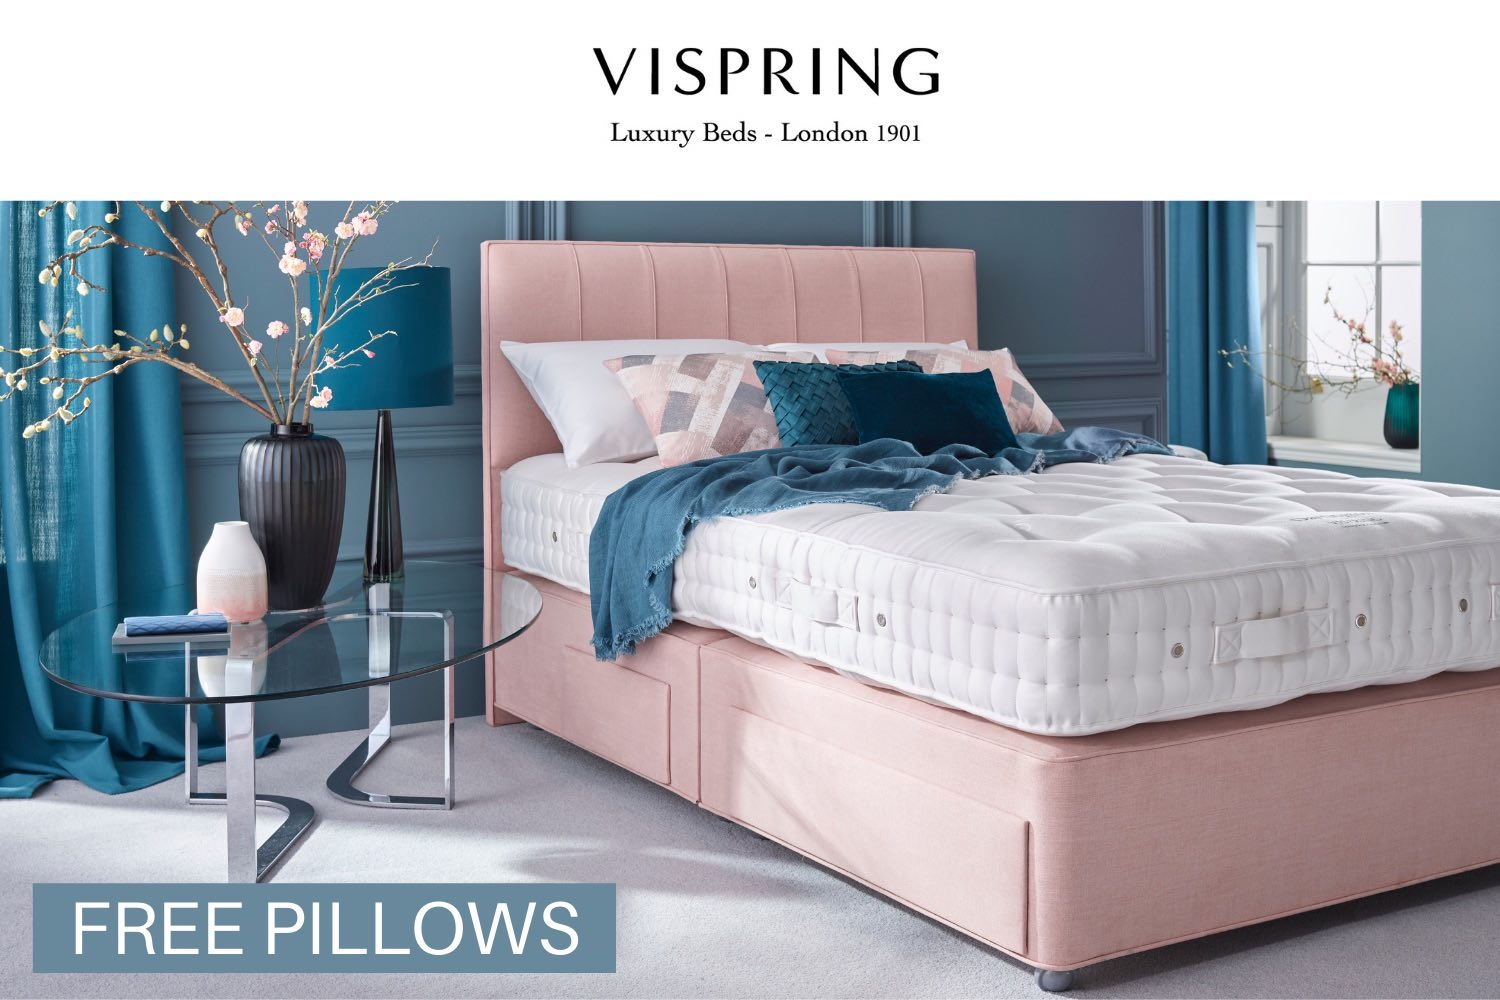 Vispring free pillows promotion